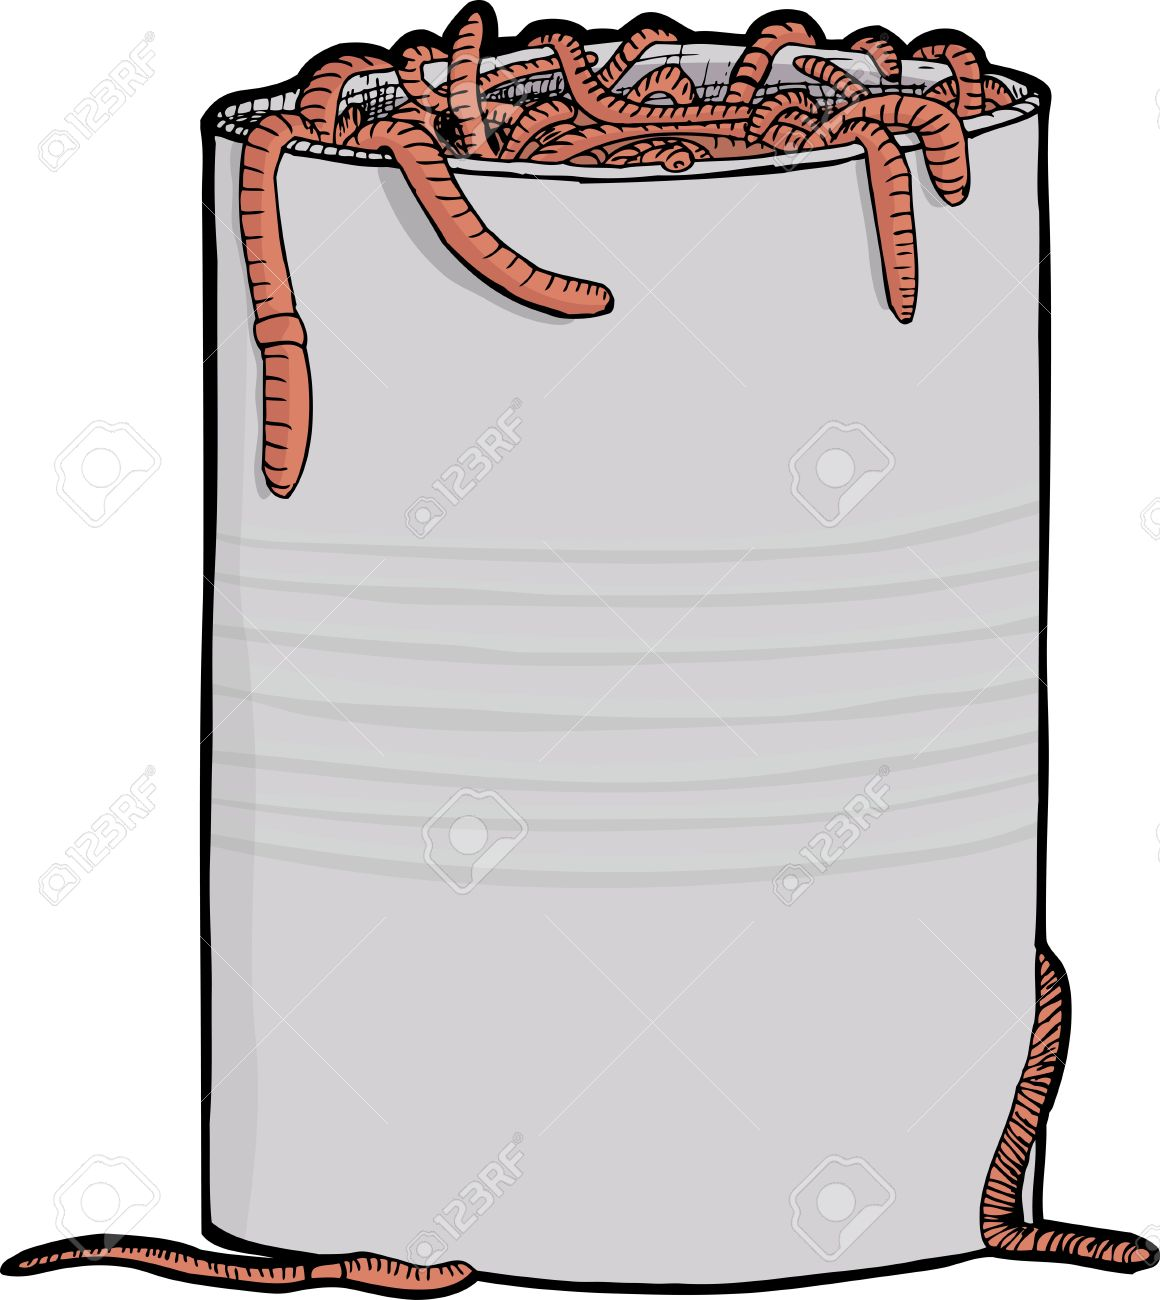 Dozens of worms squirm around a metal can Stock Vector - 10264827